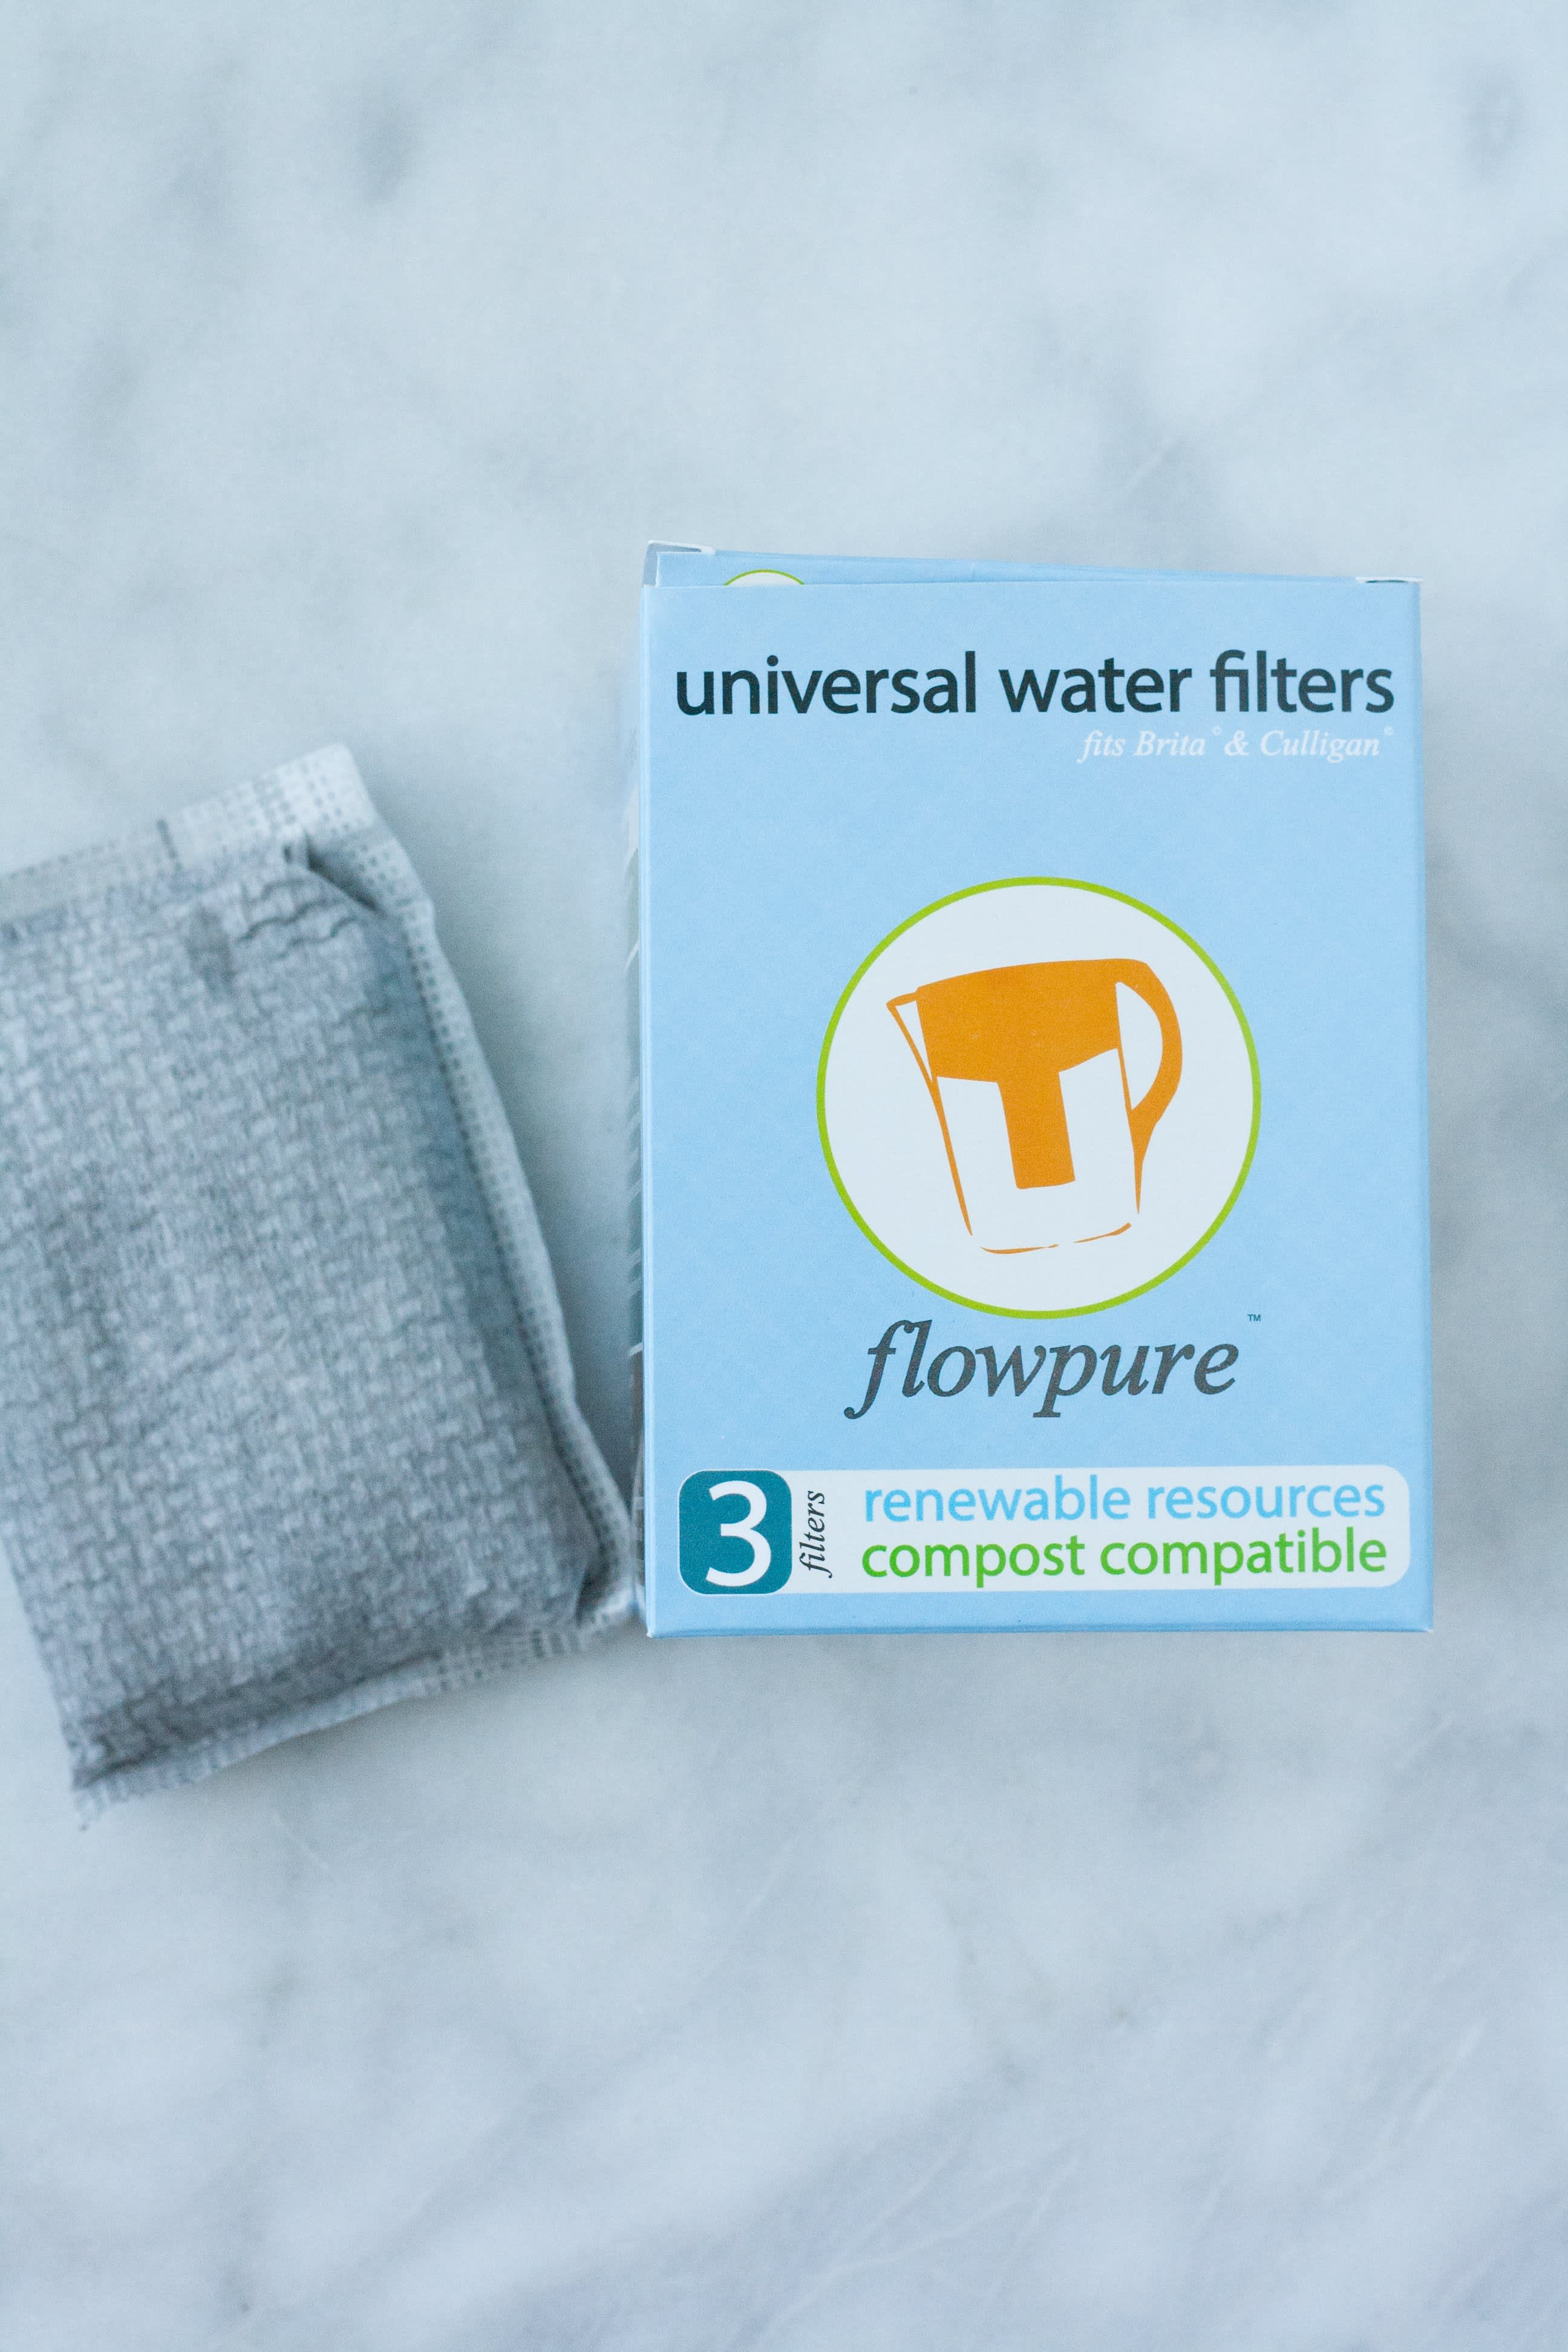 Flowpure Is a Green, Compostable Filter for Any Water Pitcher: gallery image 2